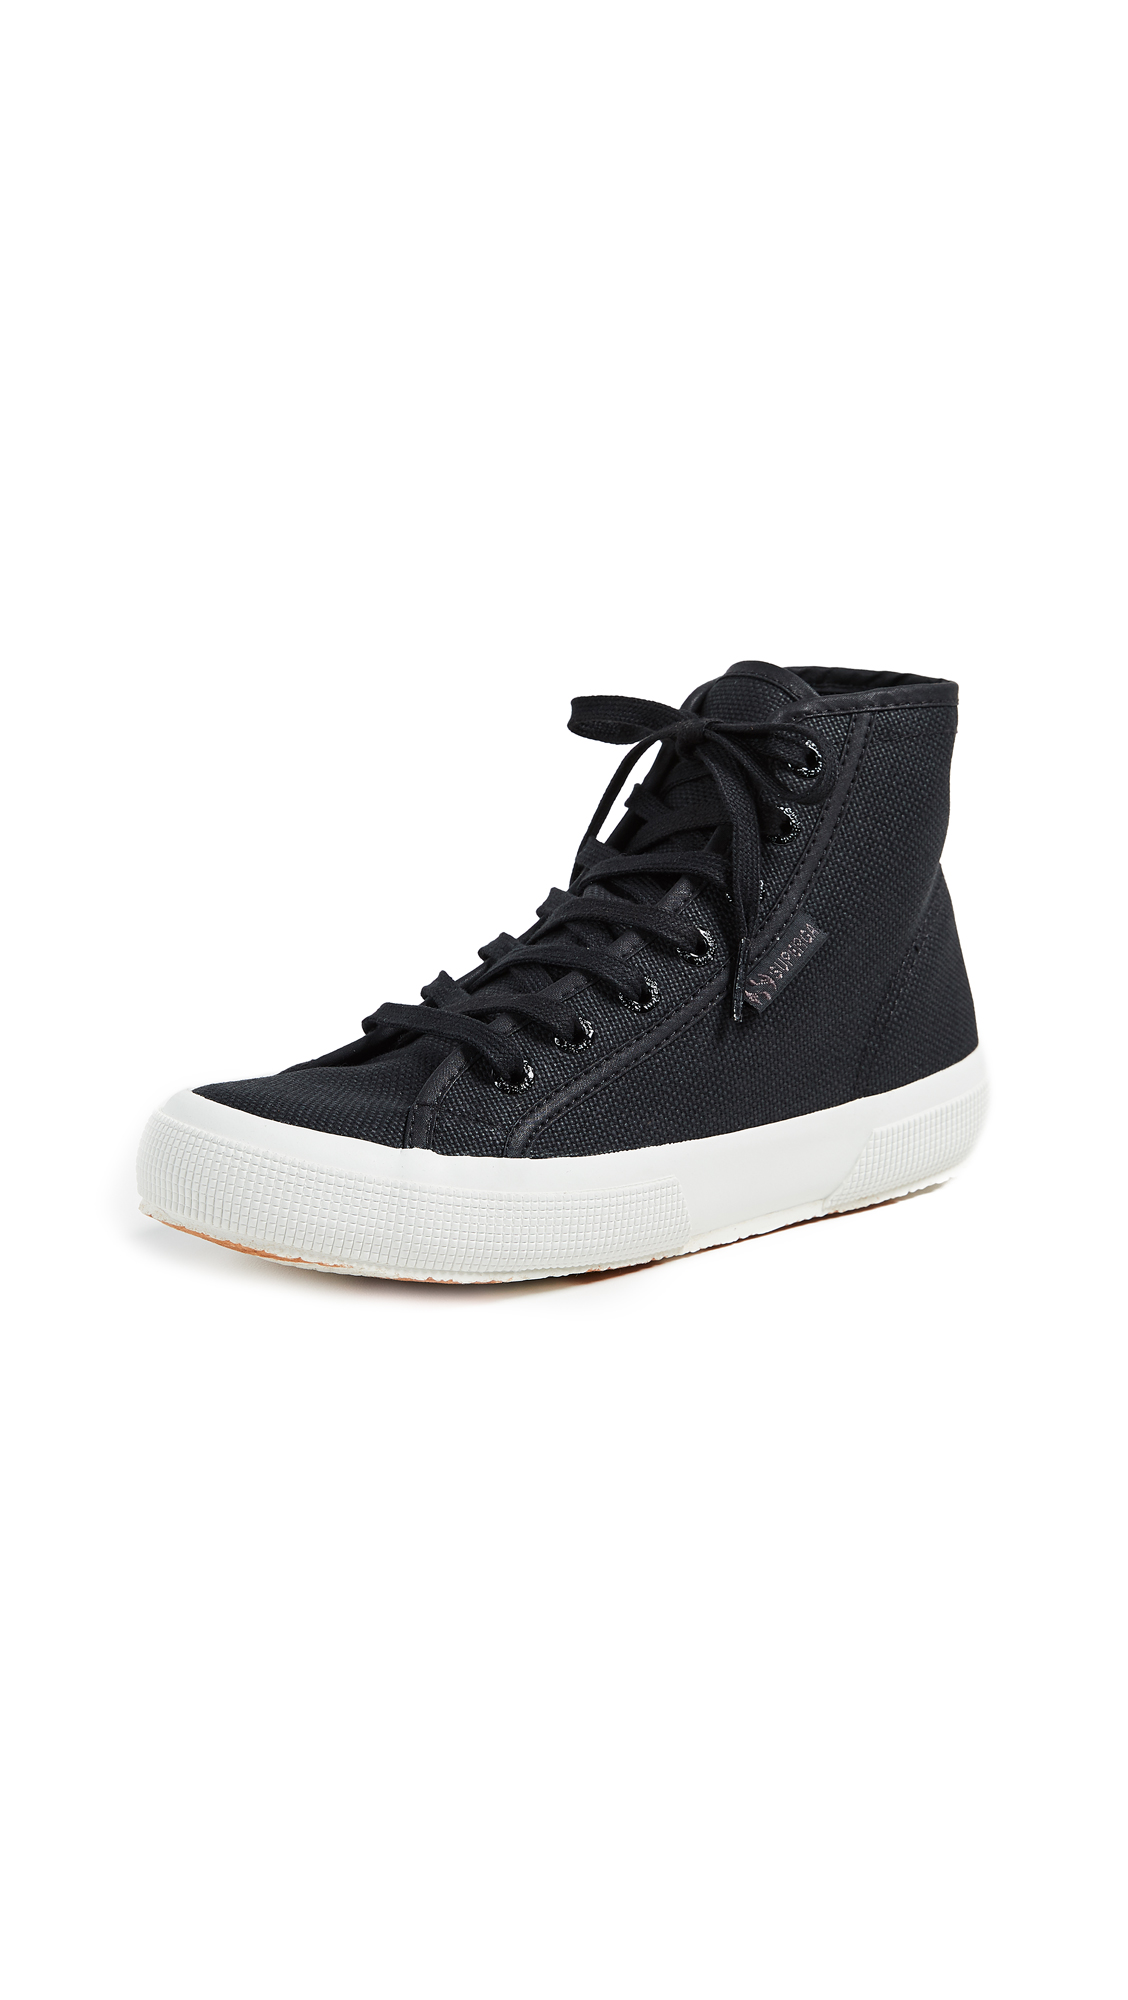 Superga 2795 Cotu High Top Classic Sneakers In Black/White